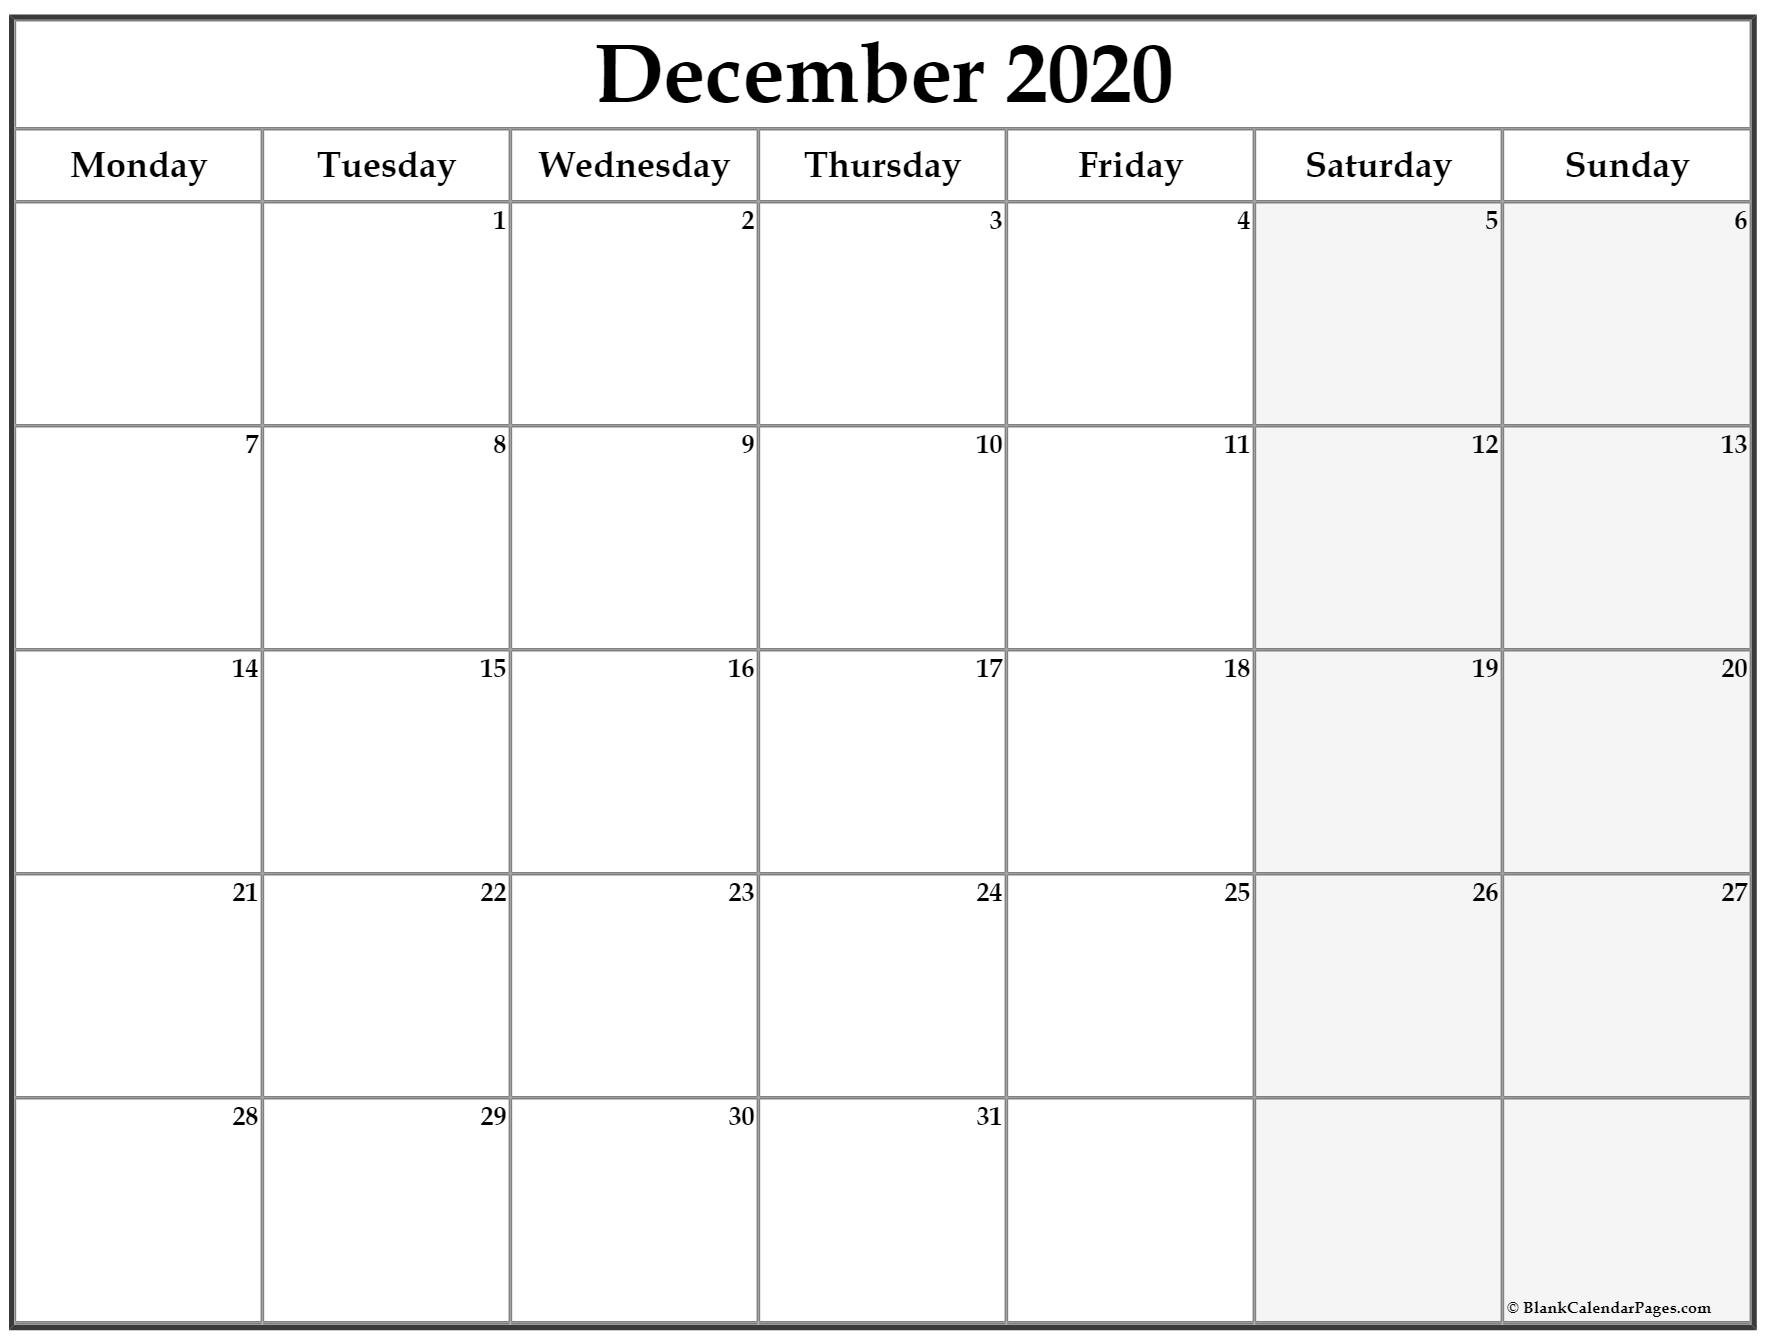 December 2020 Monday Calendar | Monday To Sunday Monday Through Sunday Planner